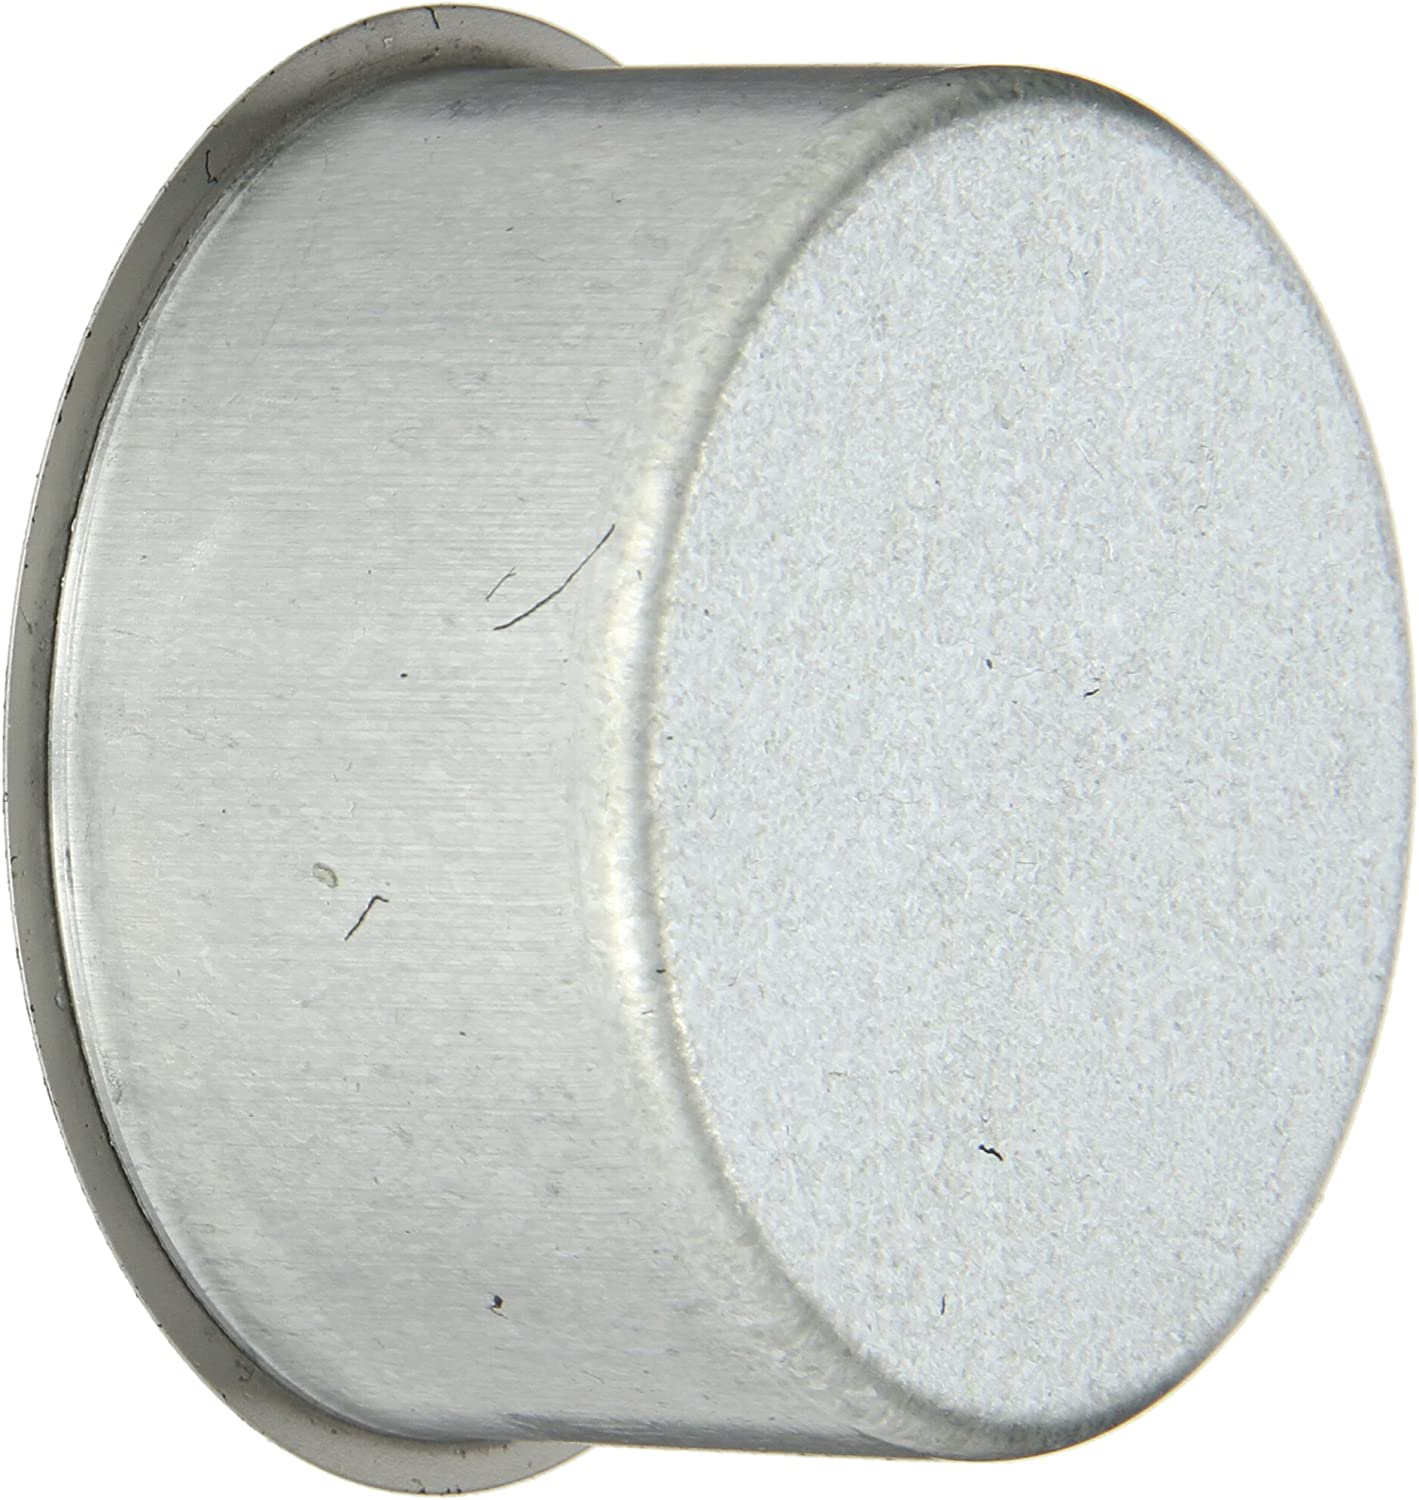 SKF 99272 Easy-to-use Speedi Sleeve SSLEEVE Inch 5% OFF Shaft Style 2.75in Diame